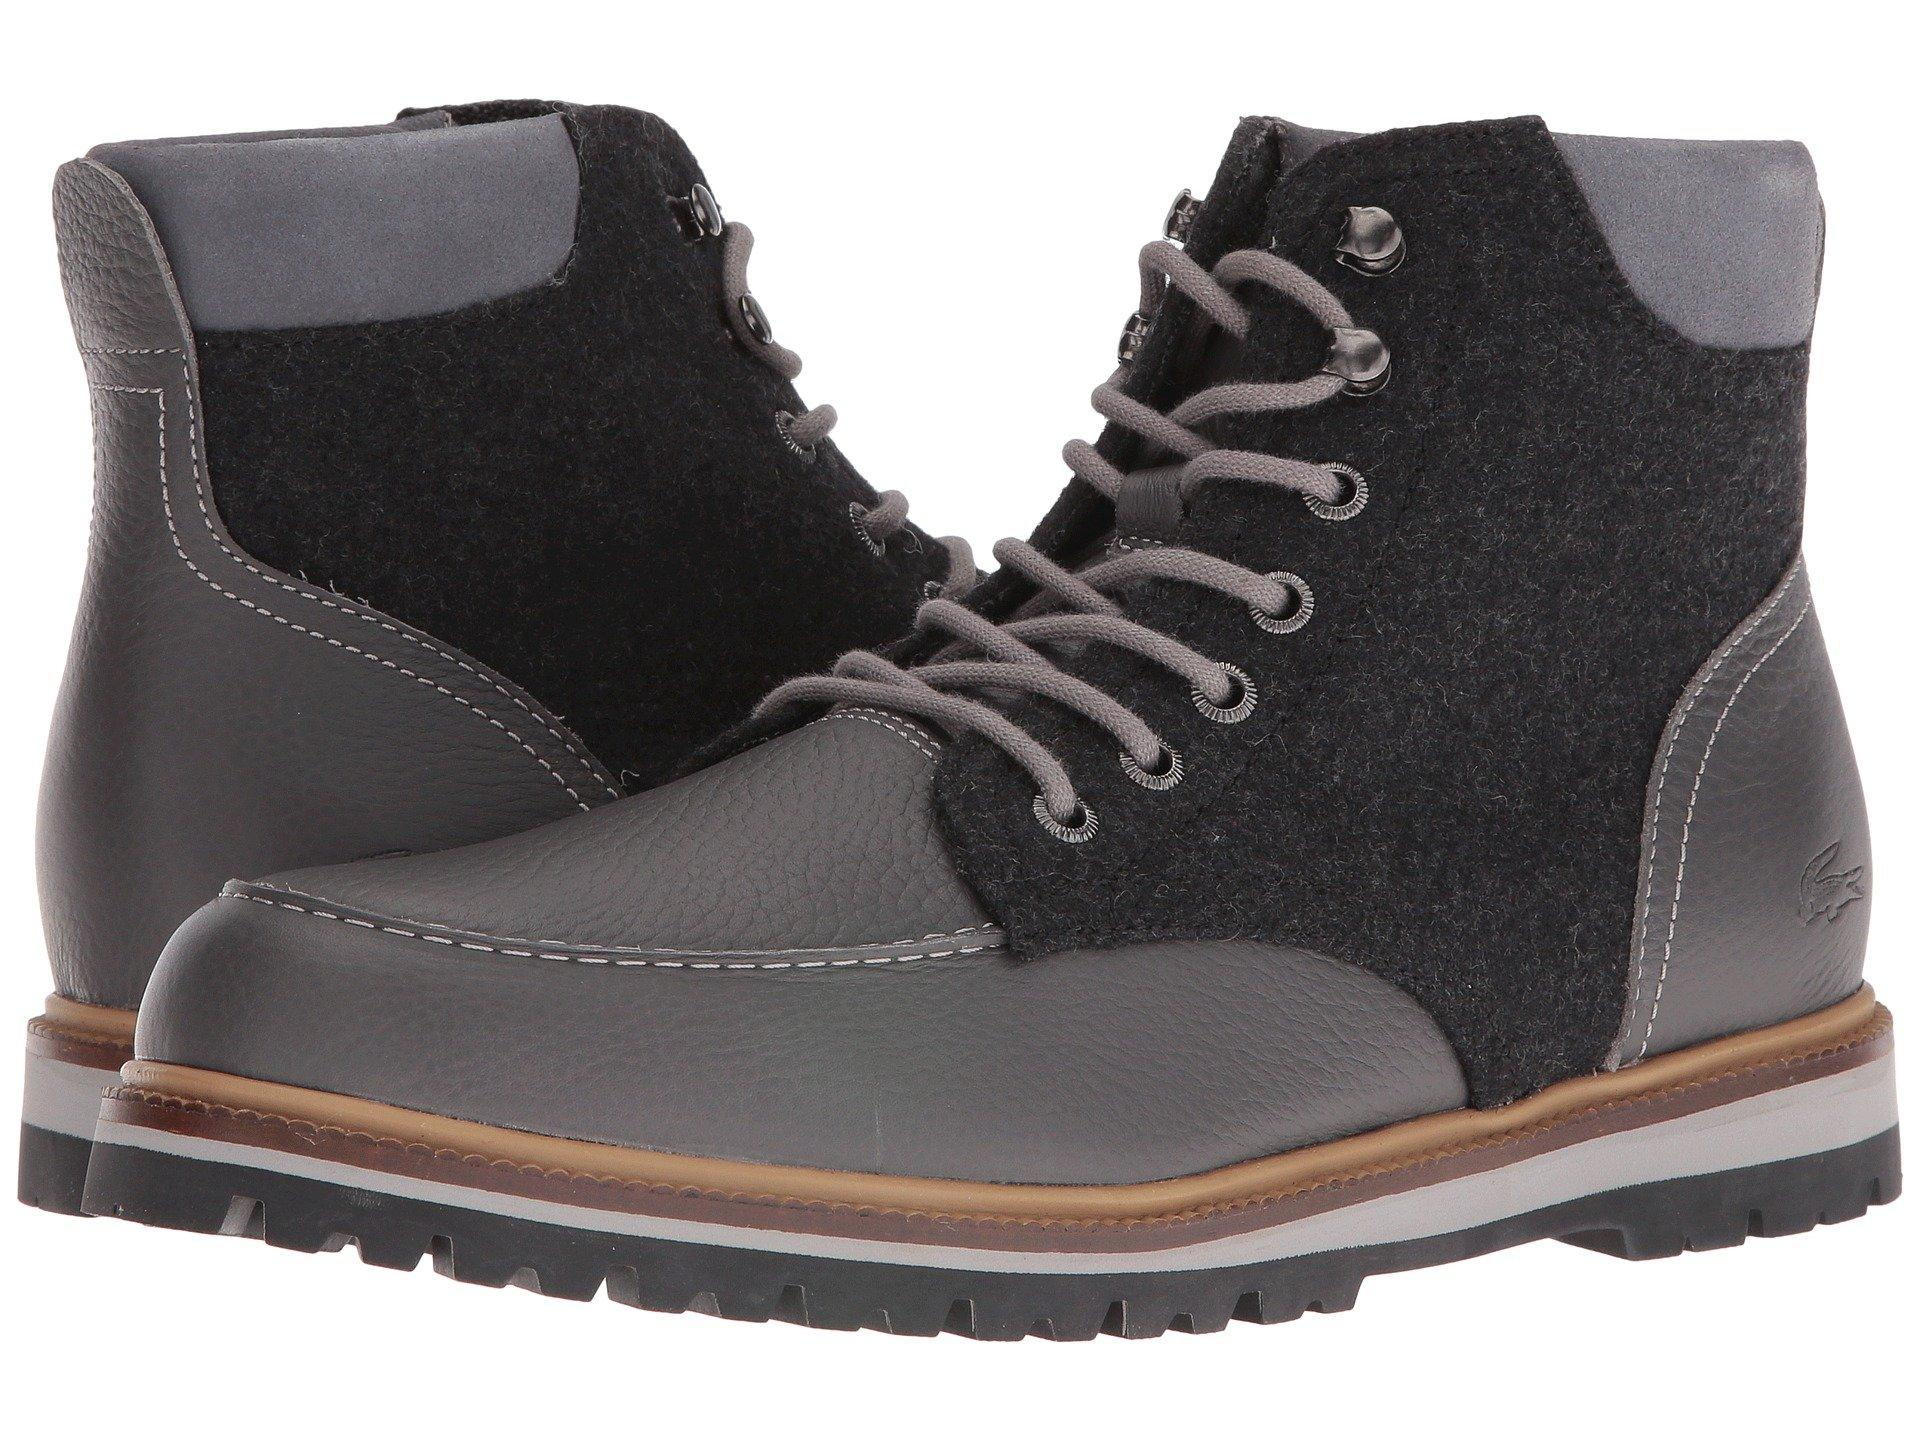 51ac88f752b8df Lacoste Montbard Boot 316 2